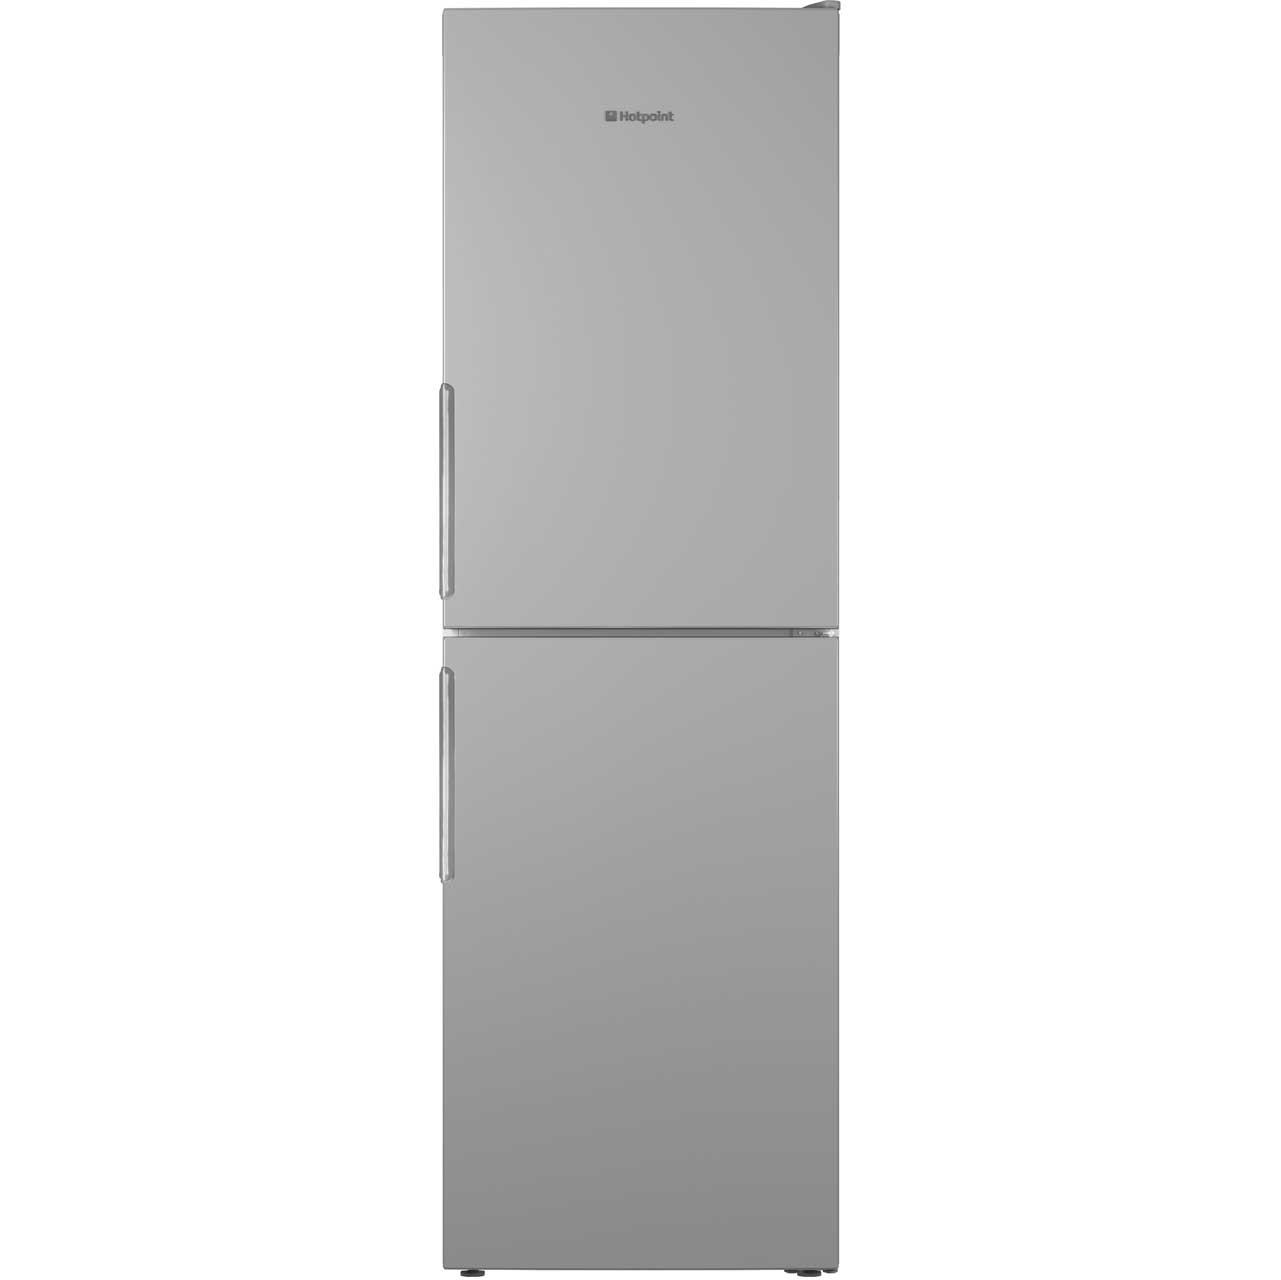 Hotpoint LAO85FF1IG Free Standing Fridge Freezer Frost Free in Graphite